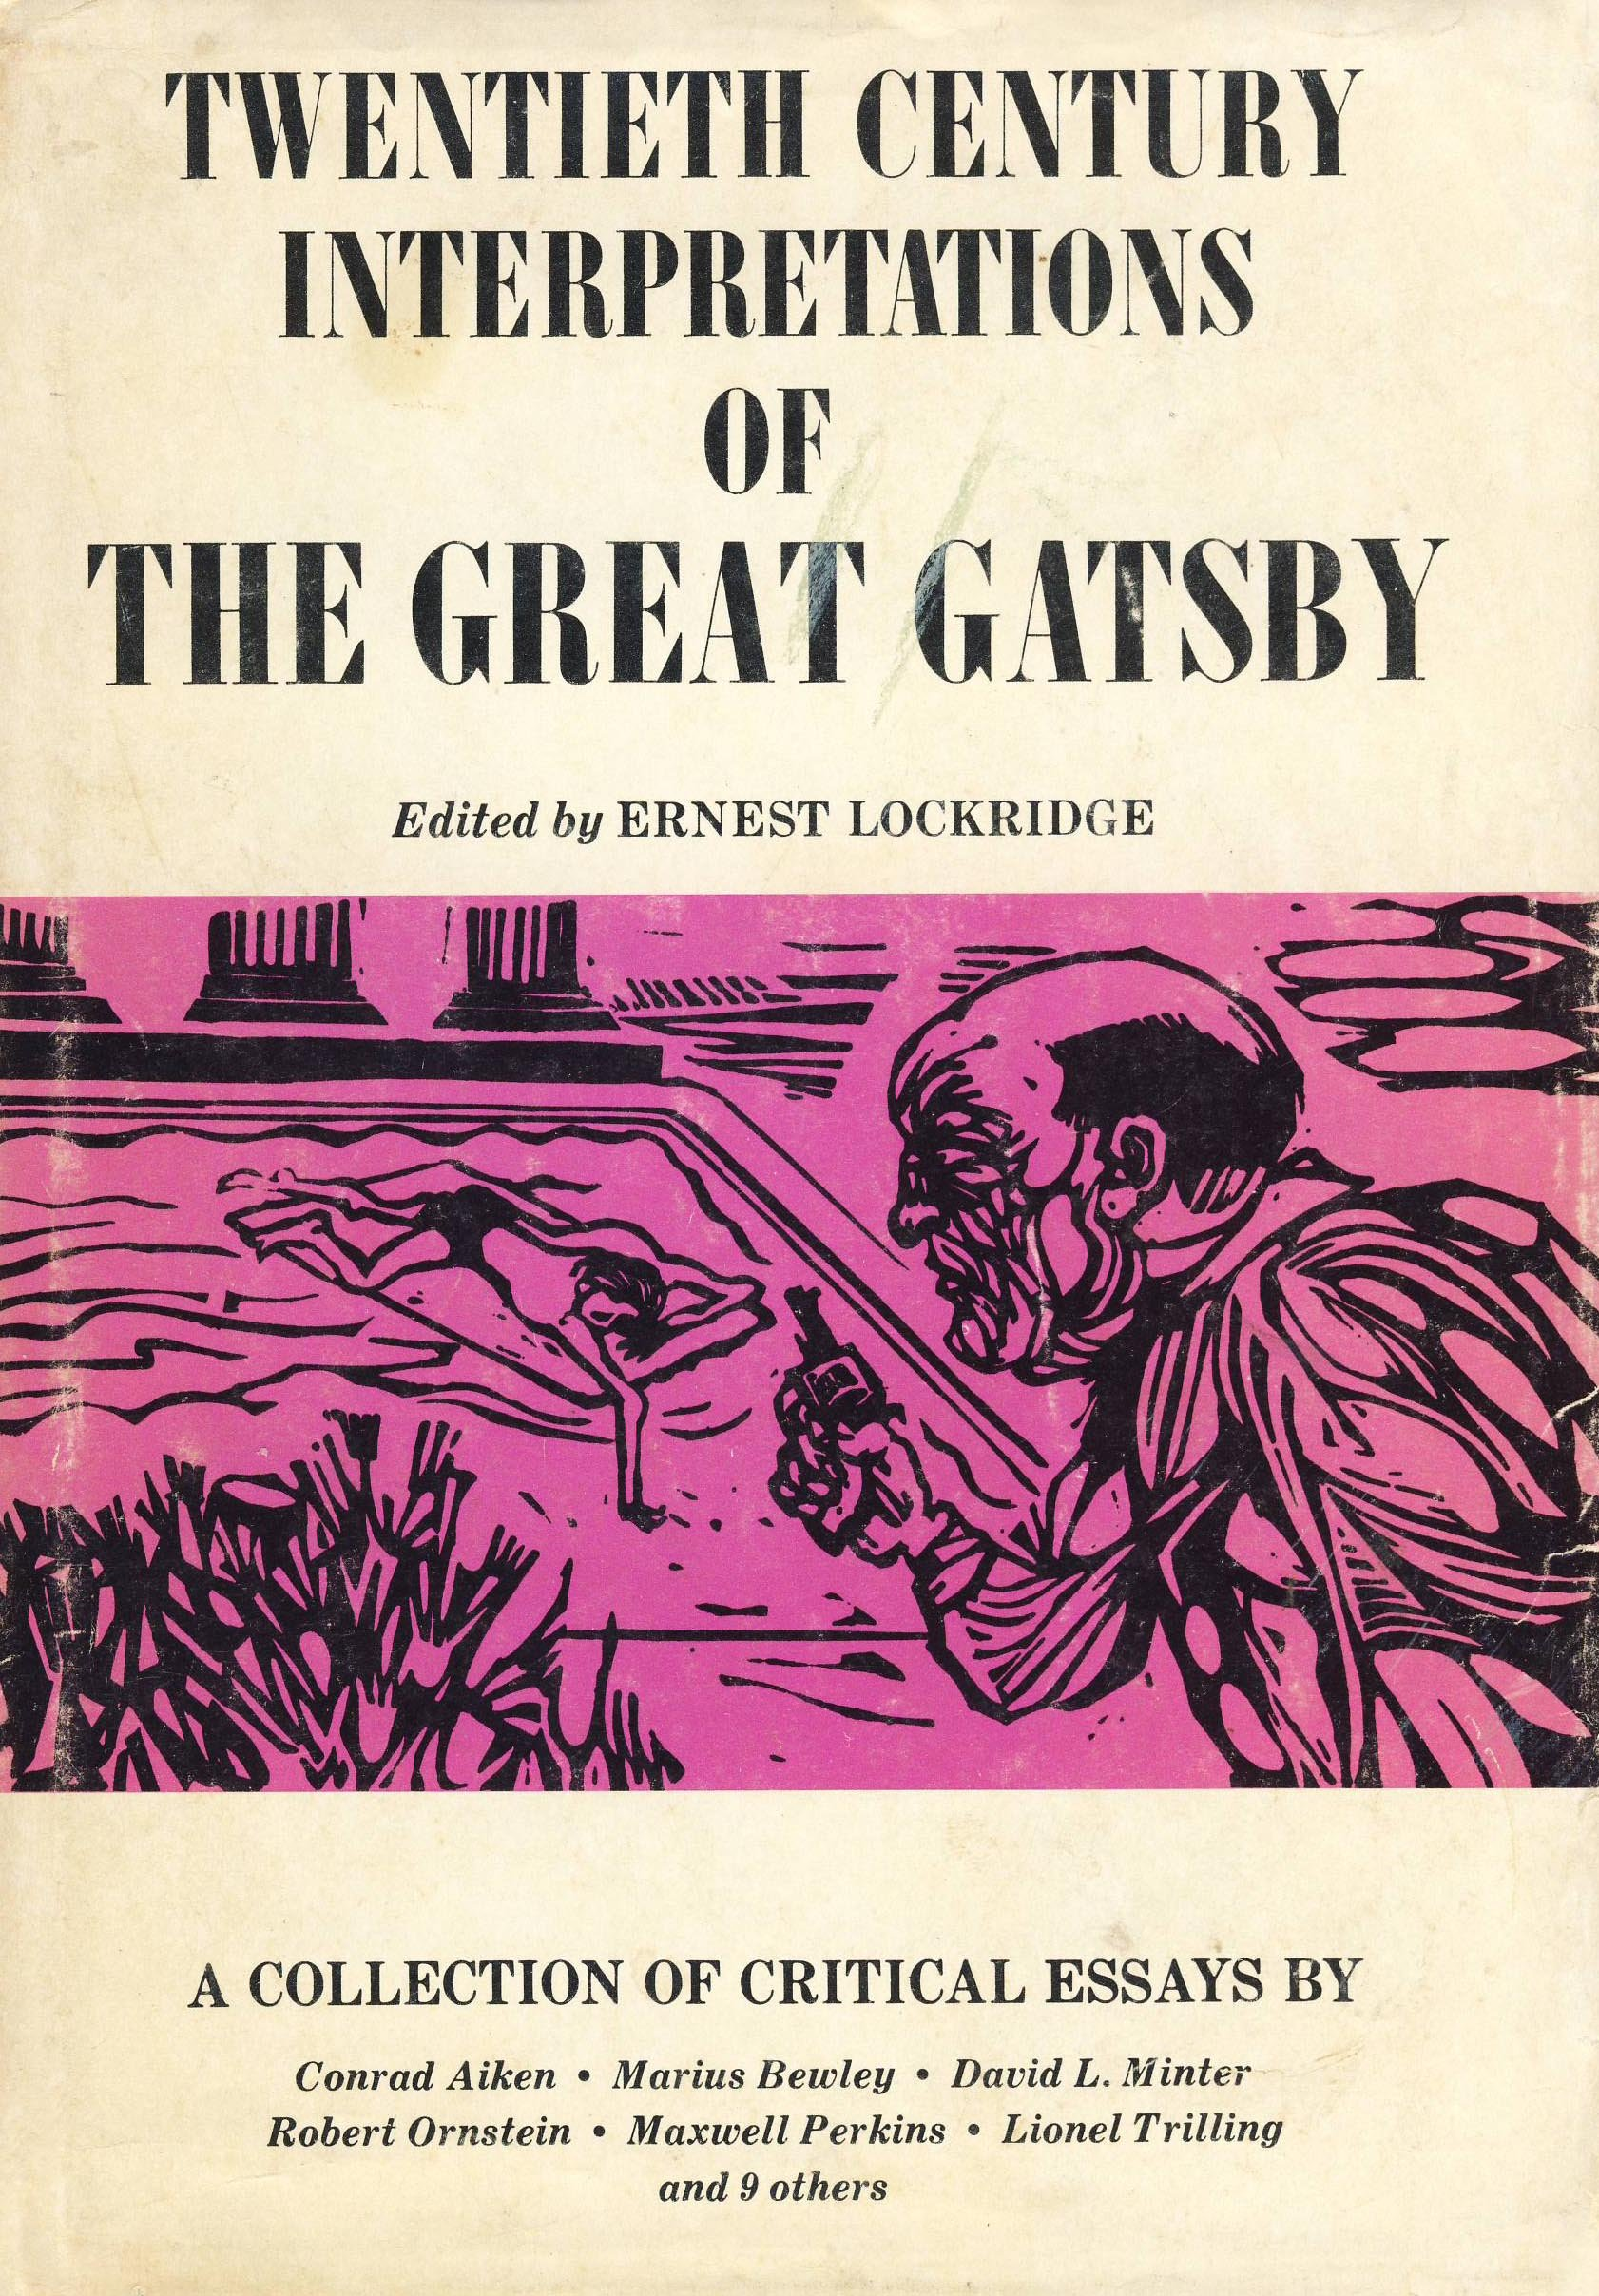 gatsby essays essay gatsby essay questions harrison bergeron  com twentieth century interpretations of the great gatsby com twentieth century interpretations of the great gatsby